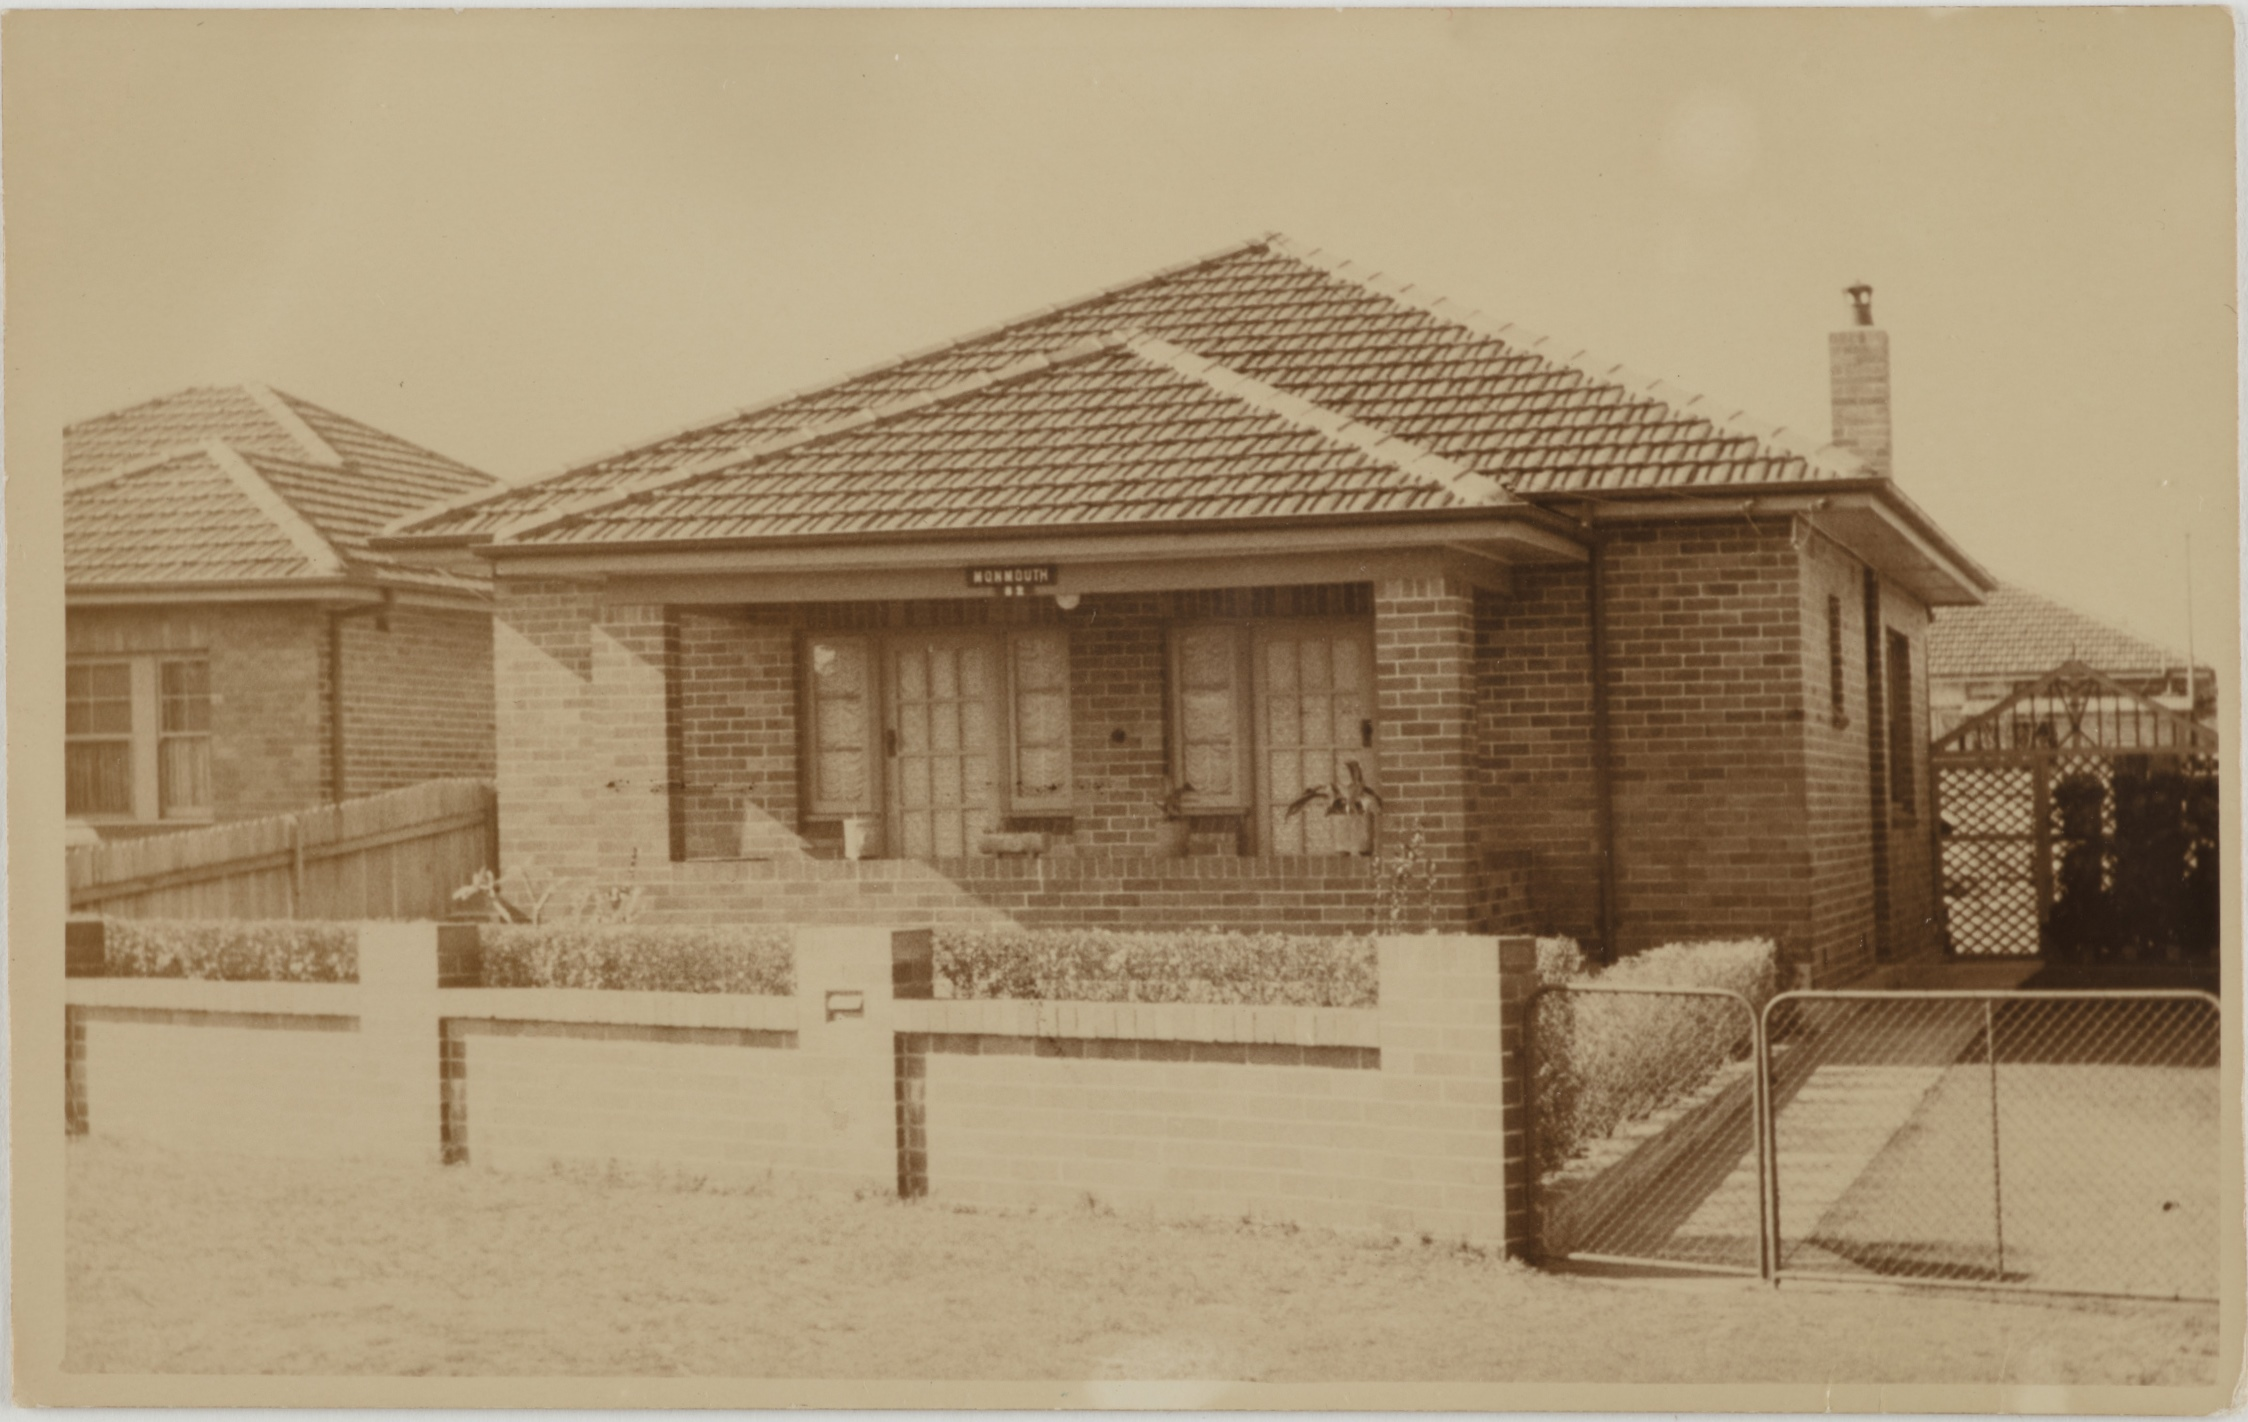 Monmouth, number 82 Florence Avenue, Eastlakes, around 1937 / photographer unknown